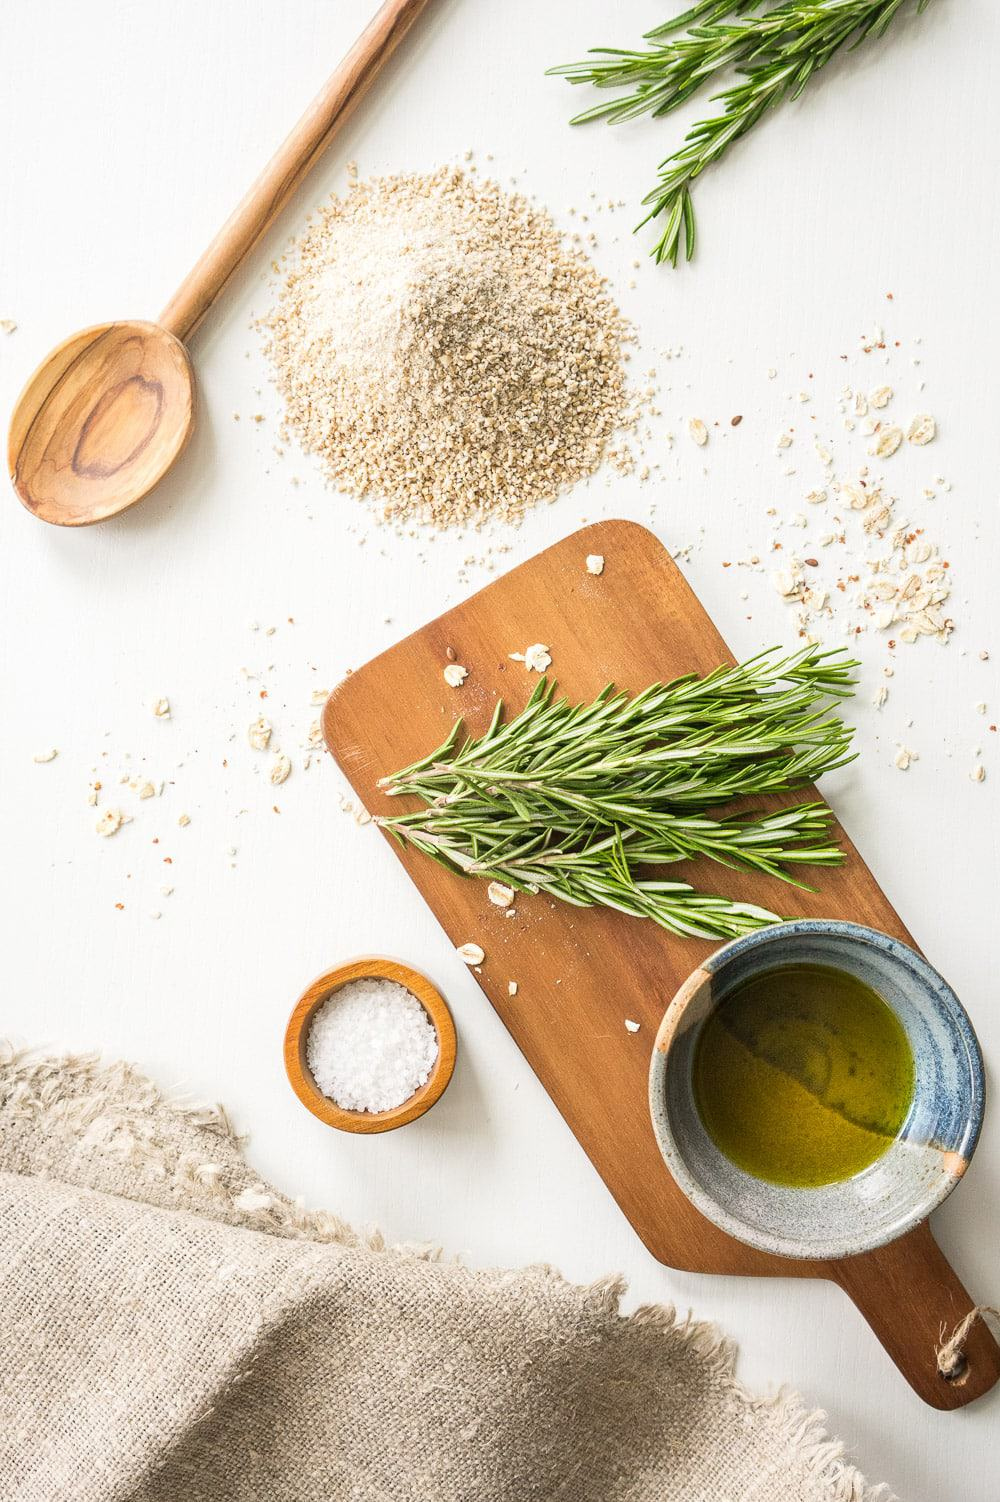 Oatmeal, rosemary, extra virgin olive oil, salt: A homemade healthy oatcakes recipe that makes the perfect everyday snack: with 5 simple ingredients these oatcakes are so easy to make! And you won't be able to stop eating them!